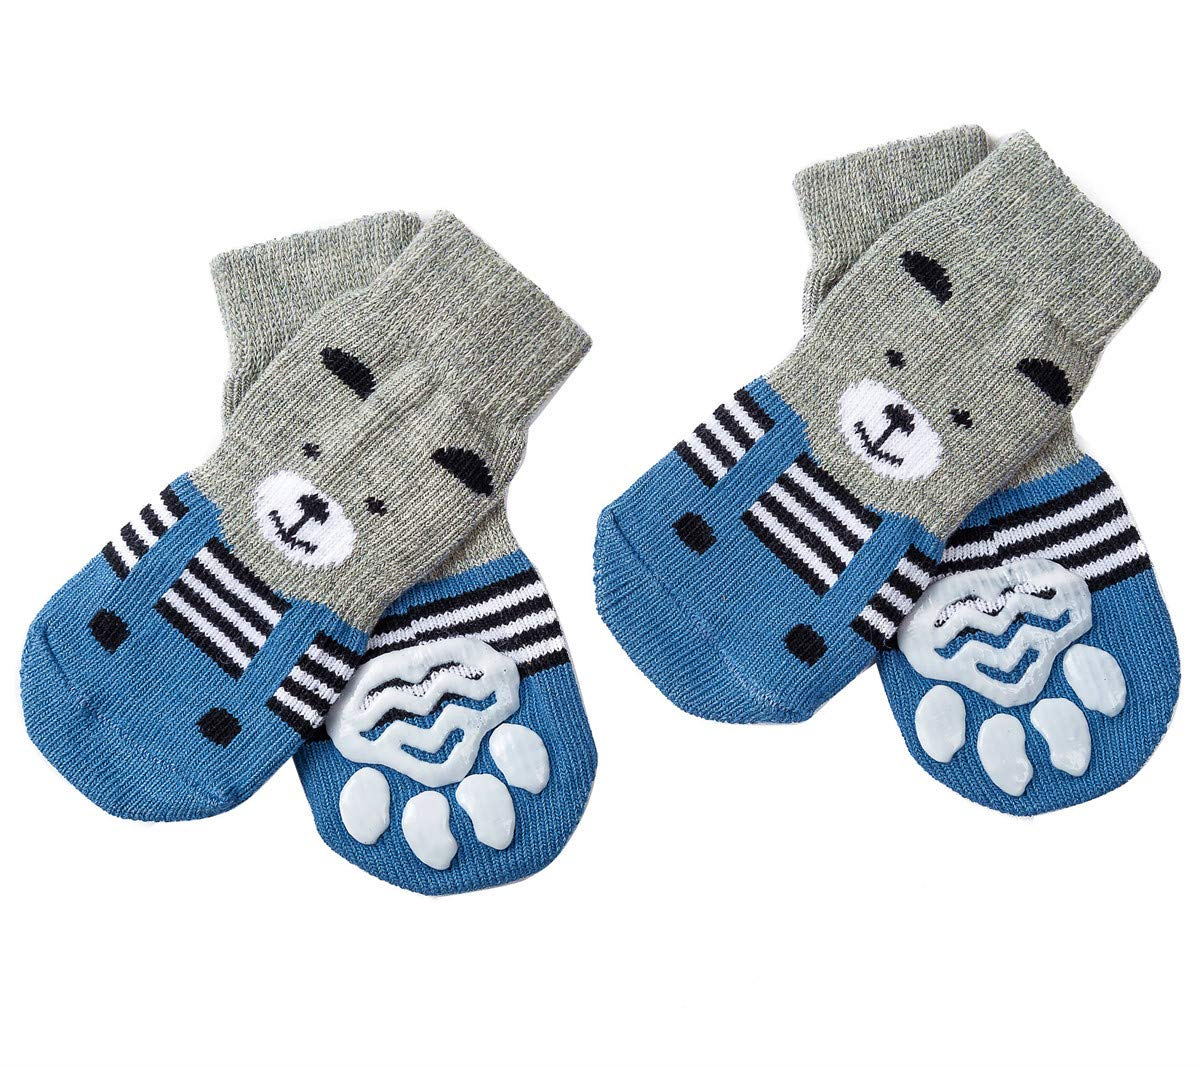 Akopawon 4 Pcs Anti-Slip Dog Socks